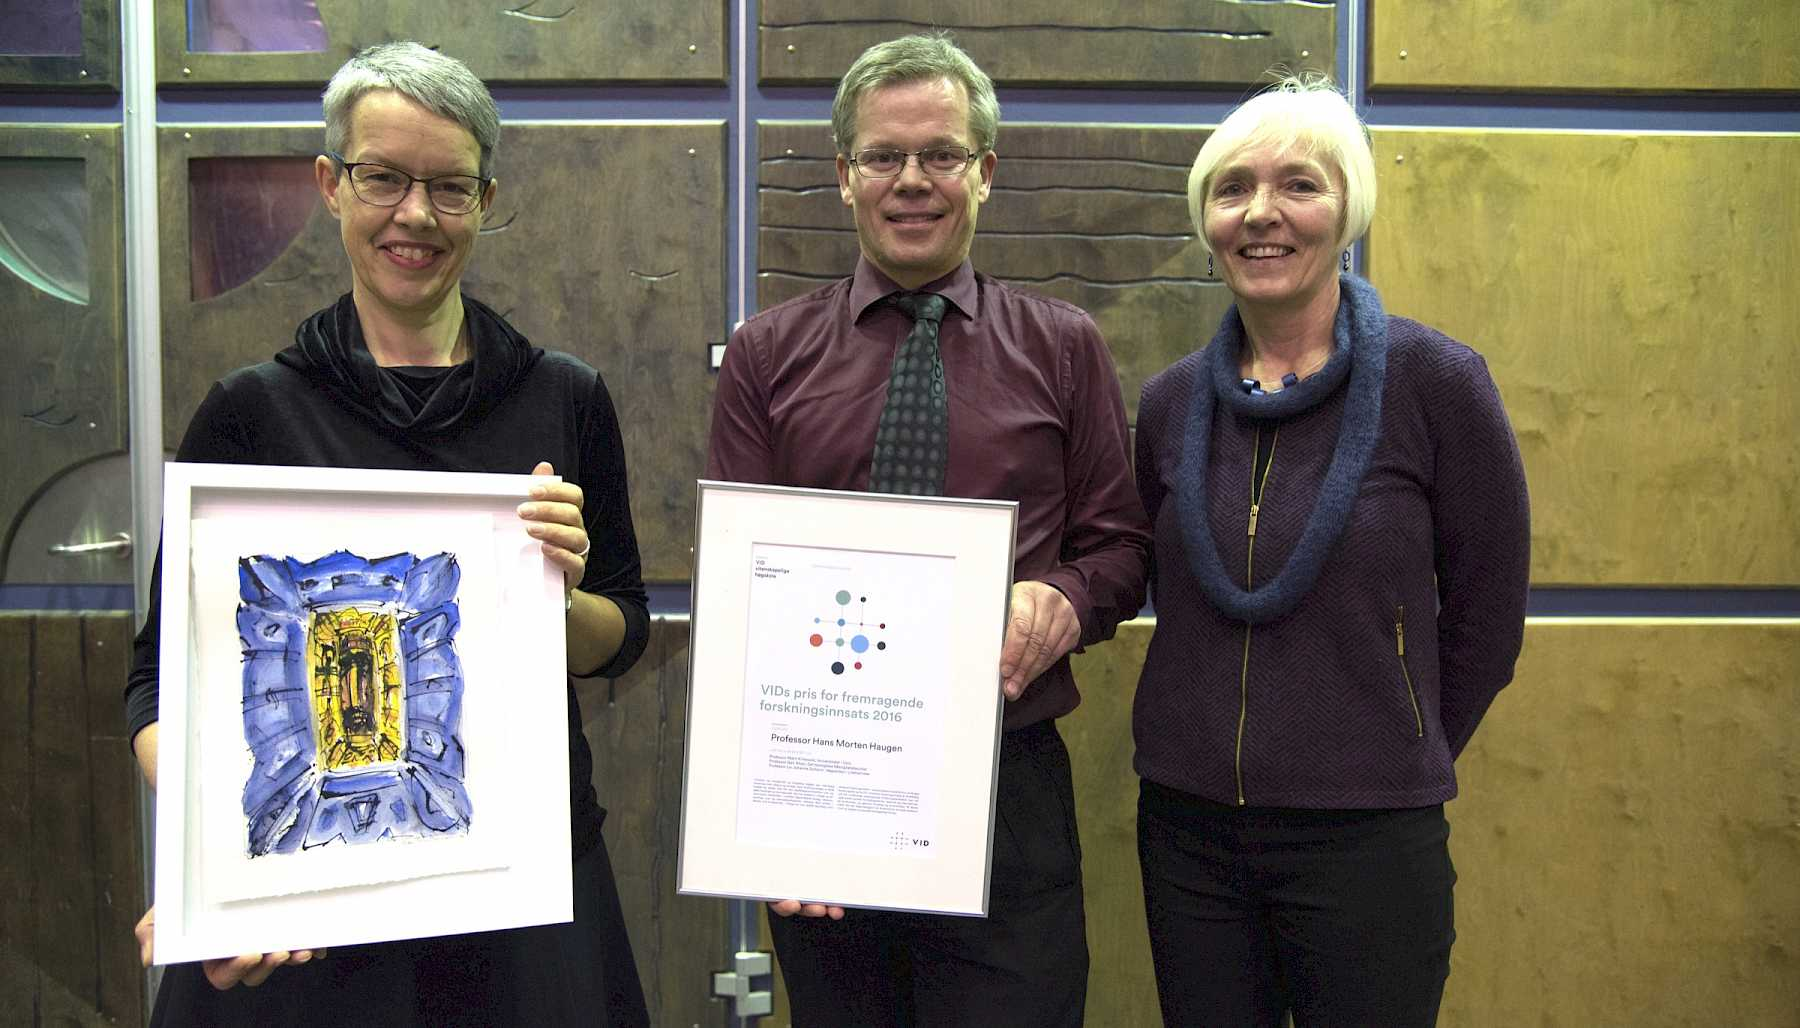 From left: Rector Ingunn Moser, Professor Hans Morten Haugen and jury president Professor Liv Johanne Solheim, Inland Norway University of Applied Sciences